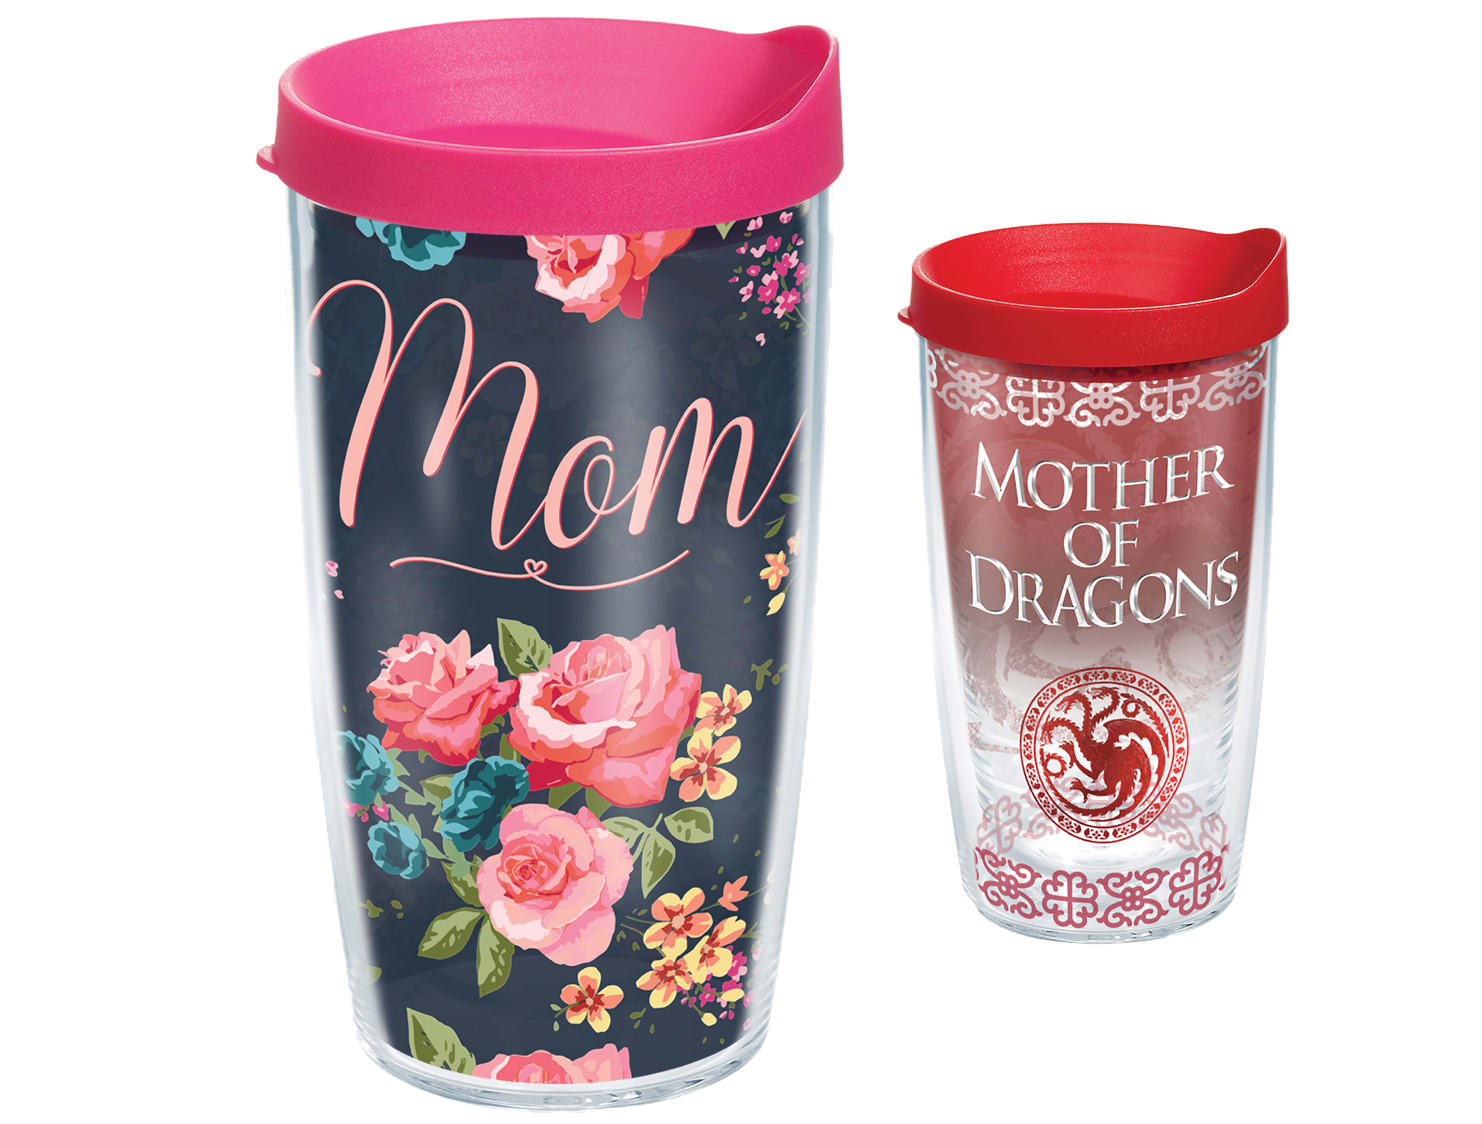 Mom themed tervis tumblers